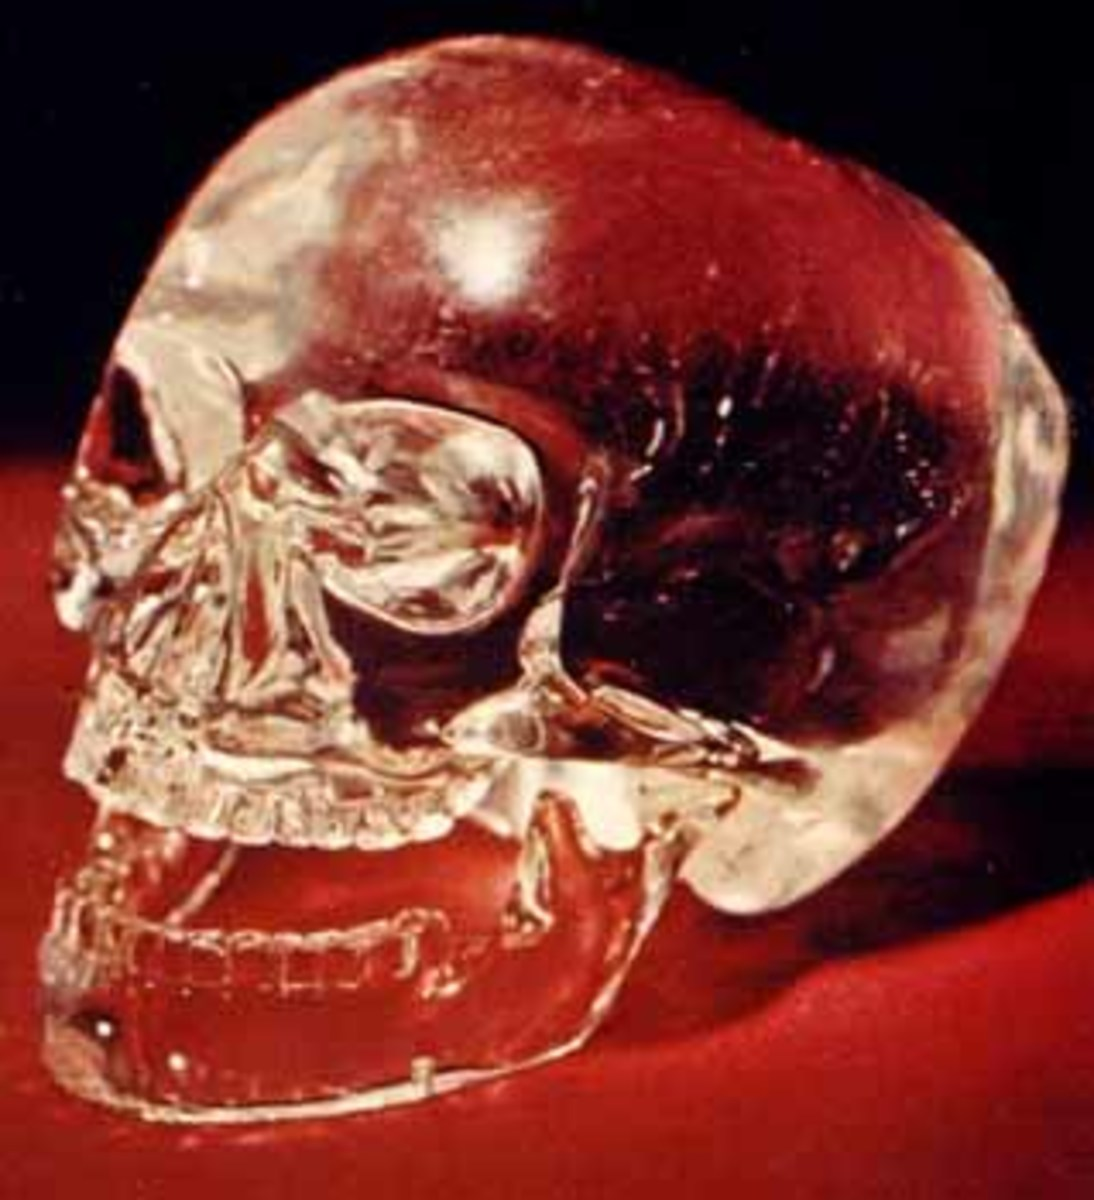 Mitchell Hedges Skull: Fact or Fiction?